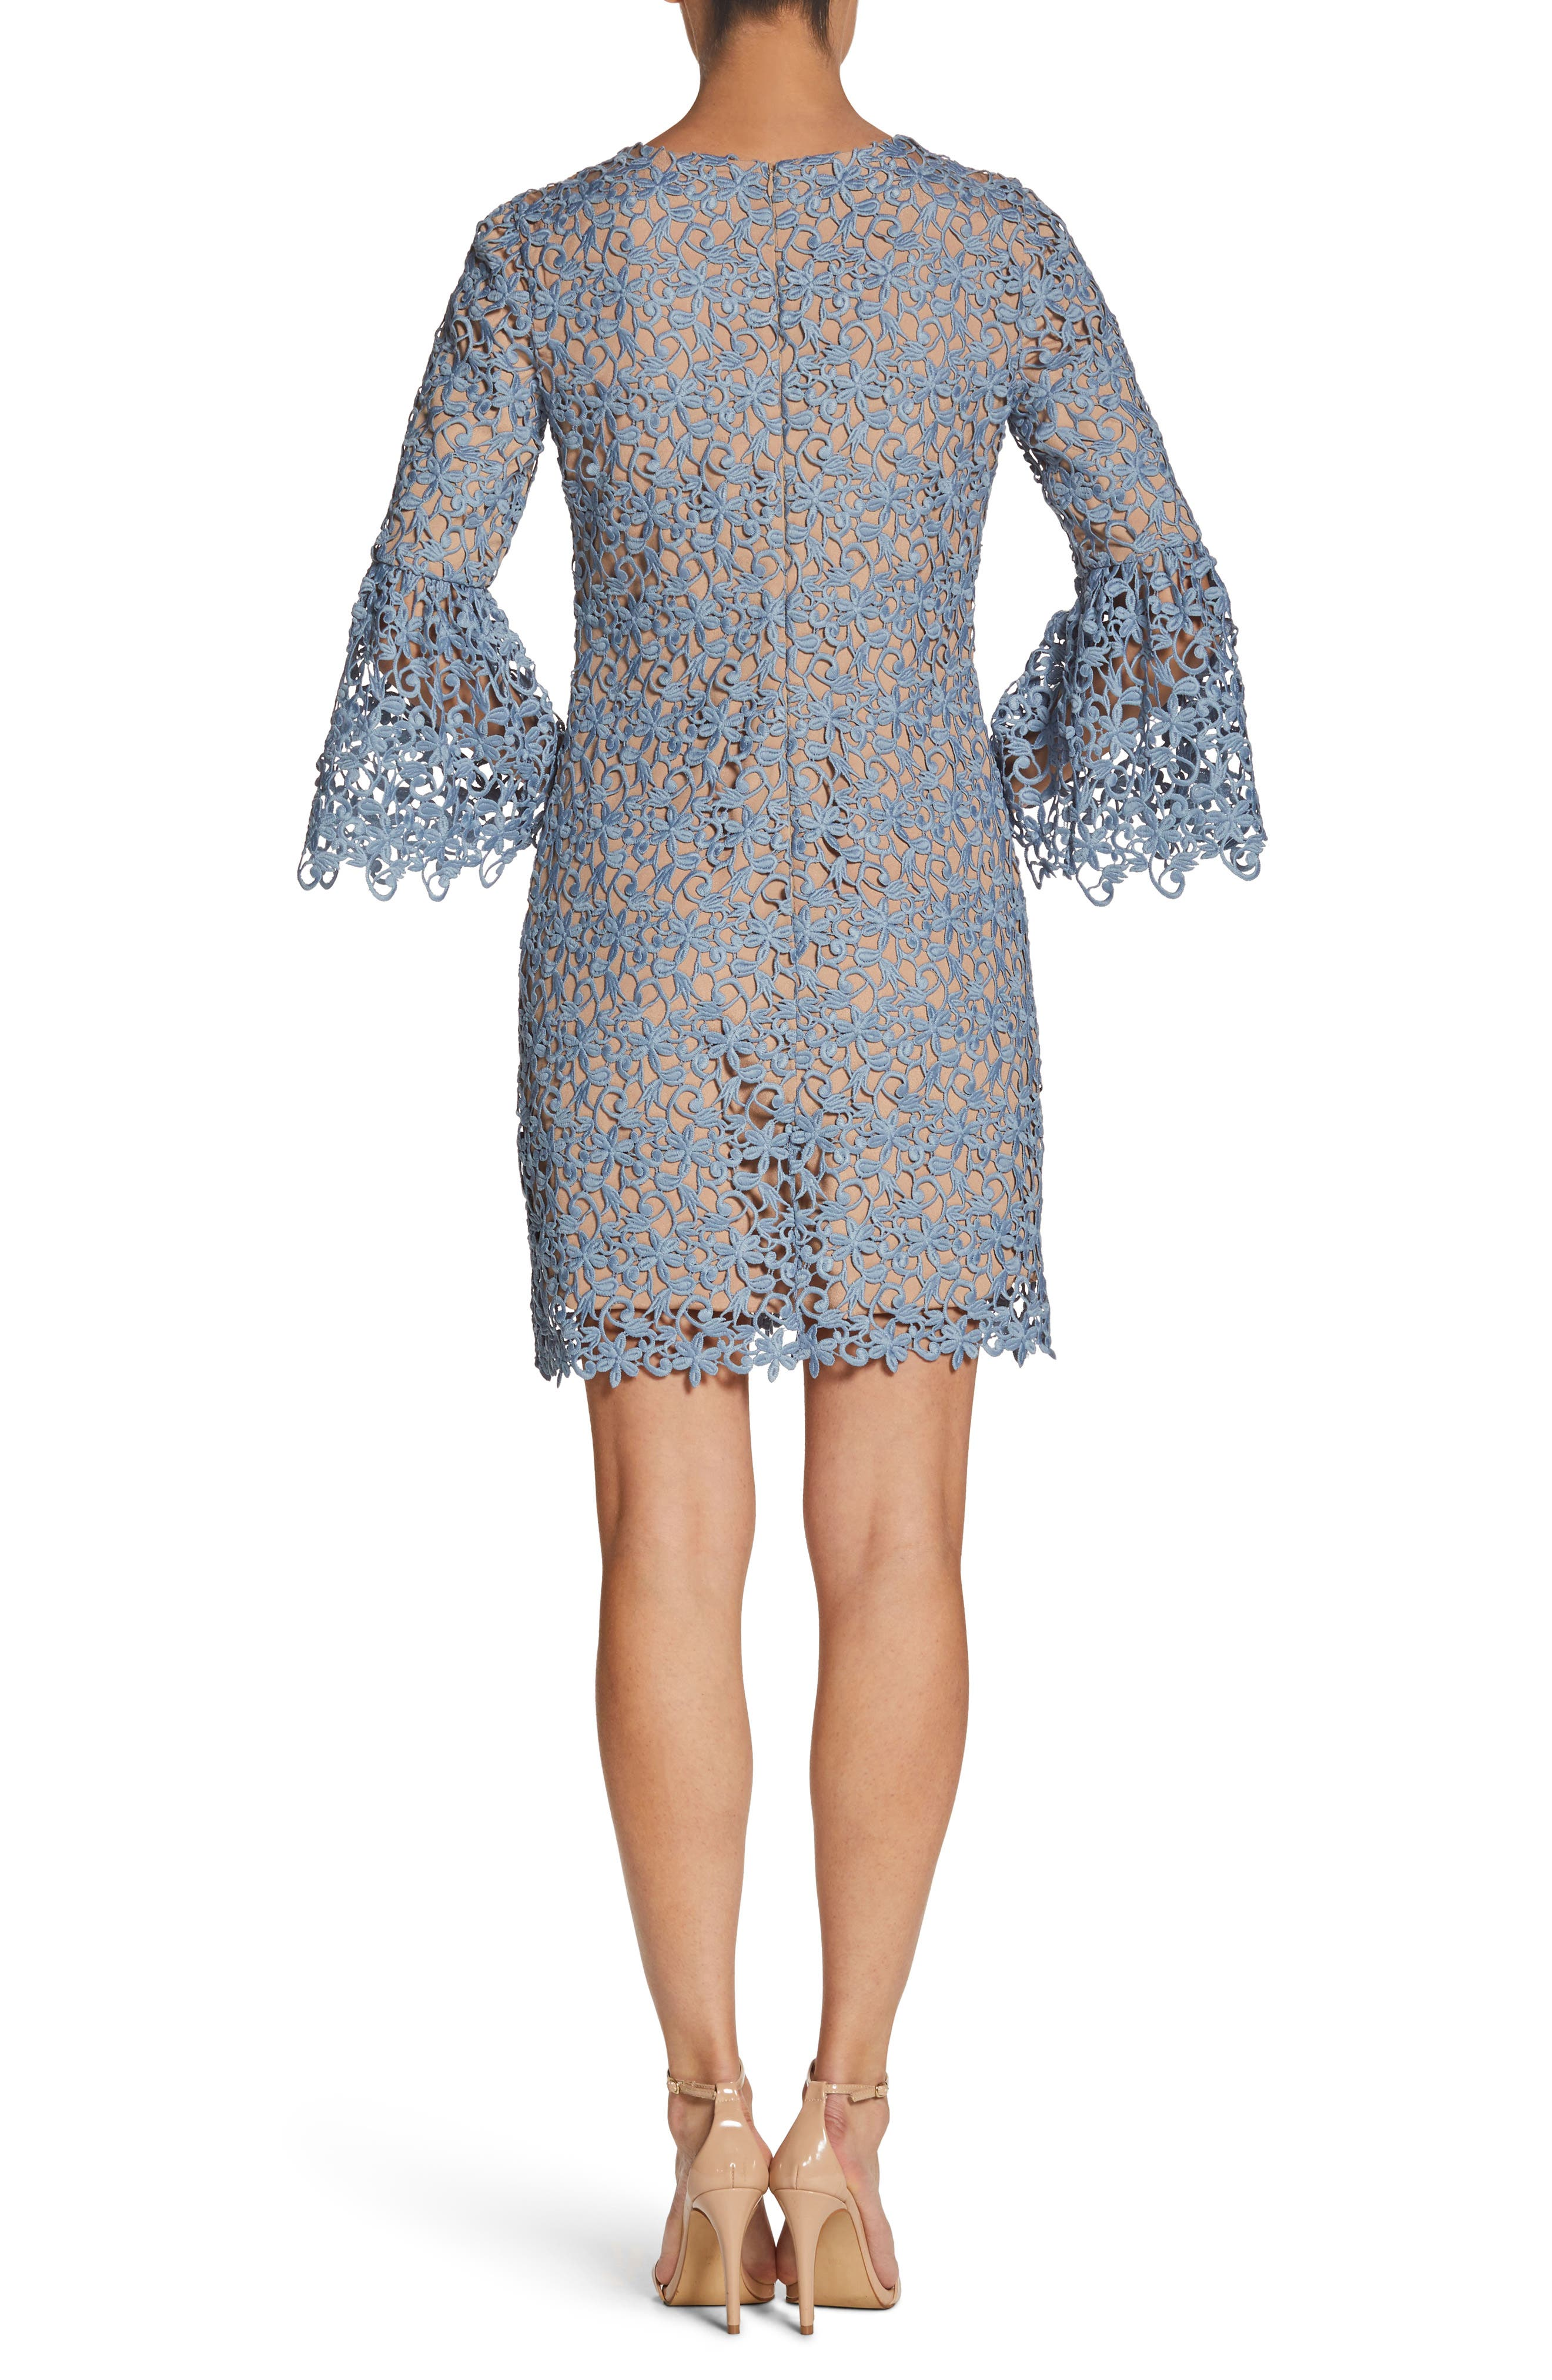 Paige Crochet Shift Dress,                             Alternate thumbnail 3, color,                             Mineral Blue/ Nude